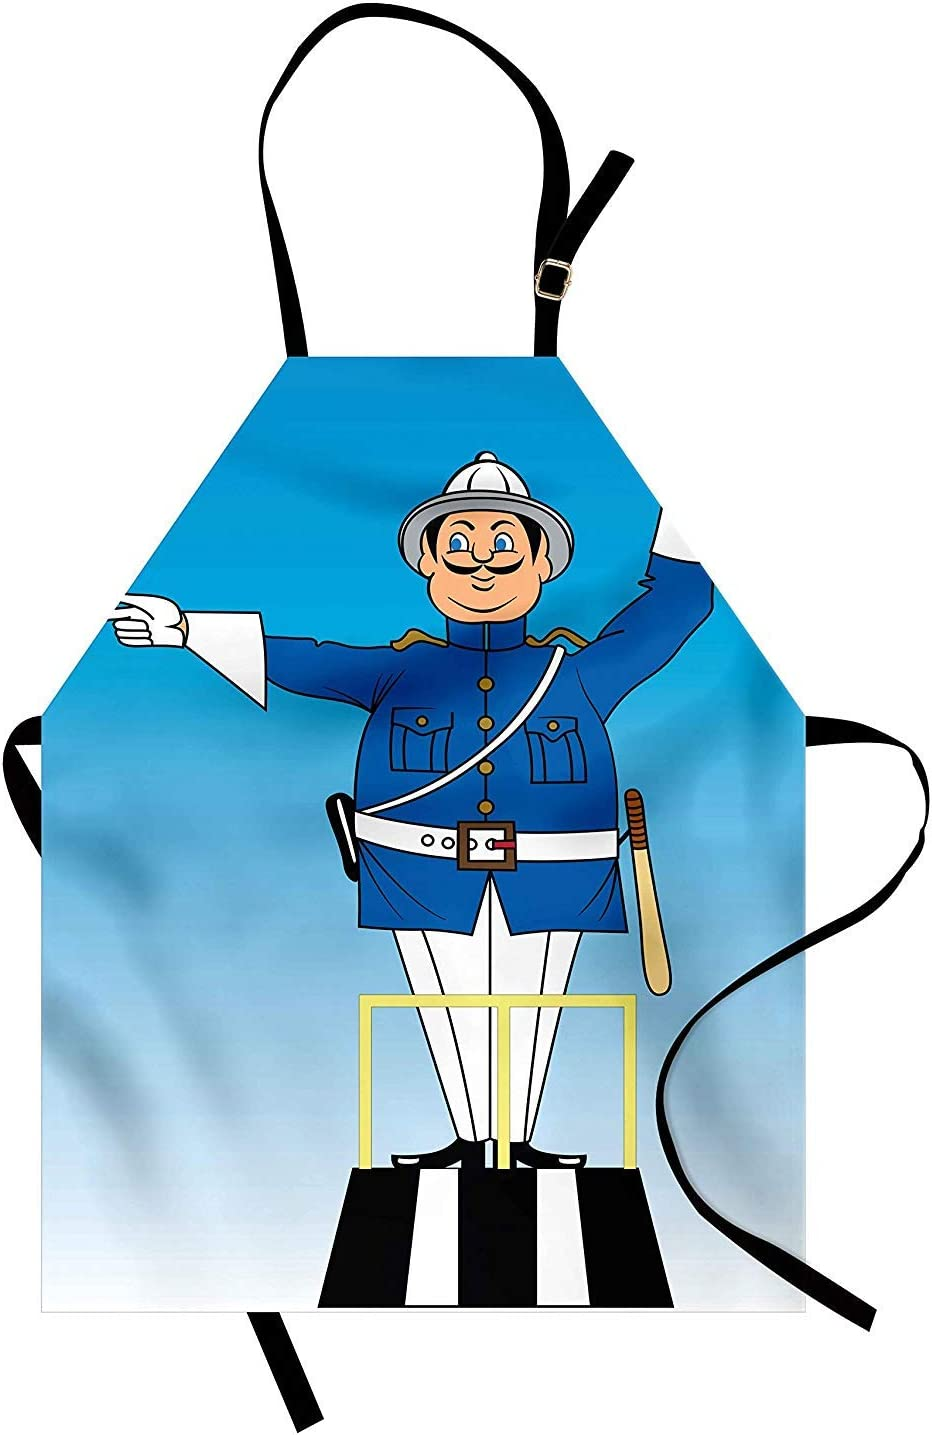 Old Police Officer Clipart   Free Images at Clker.com - vector clip art  online, royalty free & public domain